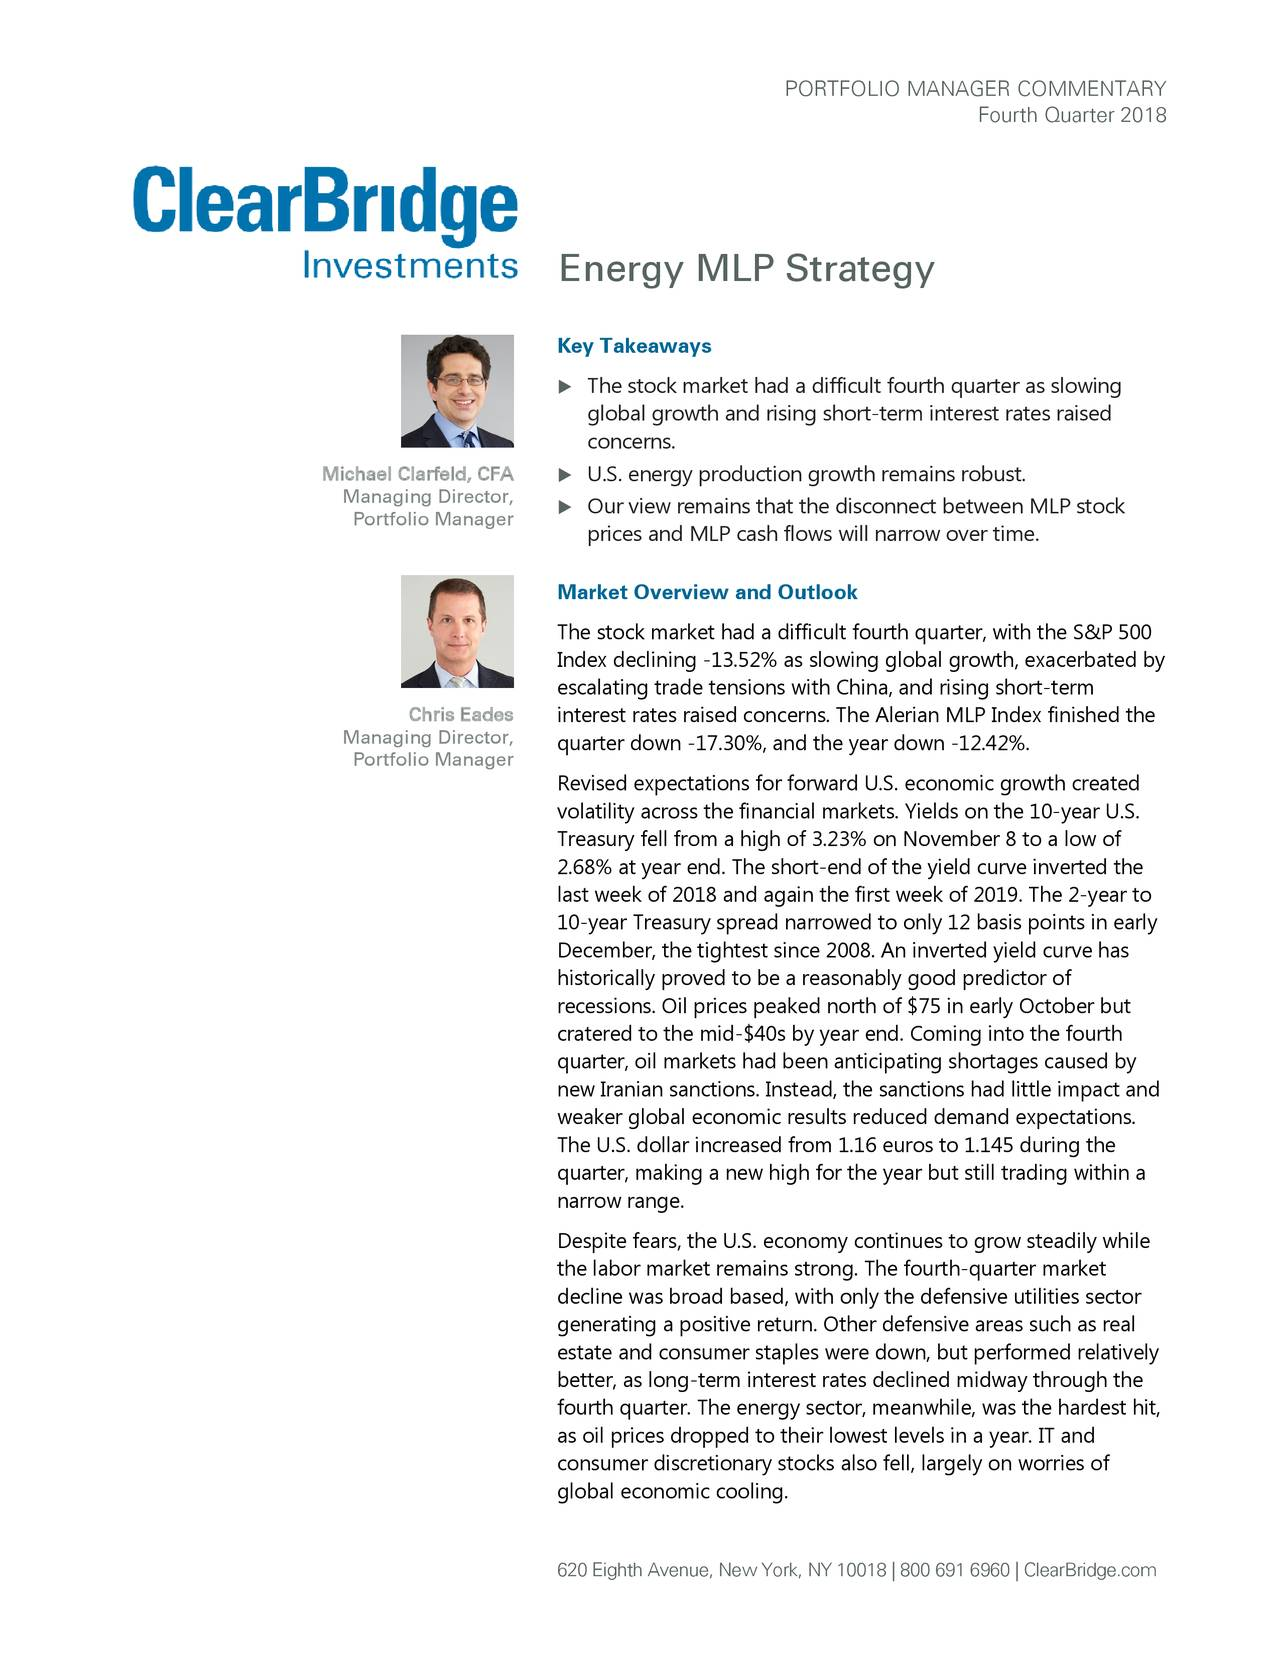 Fourth Quarter 2018 Energy MLP Strategy Key Takeaways  The stock market had a difficult fourth quarter as slowing global growth and rising short-term interest rates raised concerns. Michael Clarfeld, CFA  U.S. energy production growth remains robust. Managing Director, Portfolio Manager  Our view remains that the disconnect between MLP stock prices and MLP cash flows will narrow over time . Market Overview and Outlook The stock market had a difficult fourth quarter, with the S&P 500 Index declining -13.52% as slowing global growth, exacerbated by escalating trade tensions with China, and rising short-term Chris Eades interest rates raised concerns. The Alerian MLP Index finished the Managing Director, quarter down -17.30%, and the year down -12.42%. Portfolio Manager Revised expectations for forward U.S. economic growth created volatility across the financial markets. Yields on the 10-year U.S. Treasury fell from a high of 3.23% on November 8 to a low of 2.68% at year end. The short-end of the yield curve inverted the last week of 2018 and again the first week of 2019. The 2-year to 10-year Treasury spread narrowed to only 12 basis points in early December, the tightest since 2008. An inverted yield curve has historically proved to be a reasonably good predictor of recessions. Oil prices peaked north of $75 in early October but cratered to the mid-$40s by year end. Coming into the fourth quarter, oil markets had been anticipating shortages caused by new Iranian sanctions. Instead, the sanctions had little impact and weaker global economic results reduced demand expectations. The U.S. dollar increased from 1.16 euros to 1.145 during the quarter, making a new high for the year but still trading within a narrow range. Despite fears, the U.S. economy continues to grow steadily while the labor market remains strong. The fourth-quarter market decline was broad based, with only the defensive utilities sector generating a positive return. Other defensive areas such as real estate and consumer staples were down, but performed relatively better, as long-term interest rates declined midway through the fourth quarter. The energy sector, meanwhile, was the hardest hit, as oil prices dropped to their lowest levels in a year. IT and consumer discretionary stocks also fell, largely on worries of global economic cooling. 620 Eighth Avenue, New York, NY 10018 | 800 691 6960 | ClearBridge.com